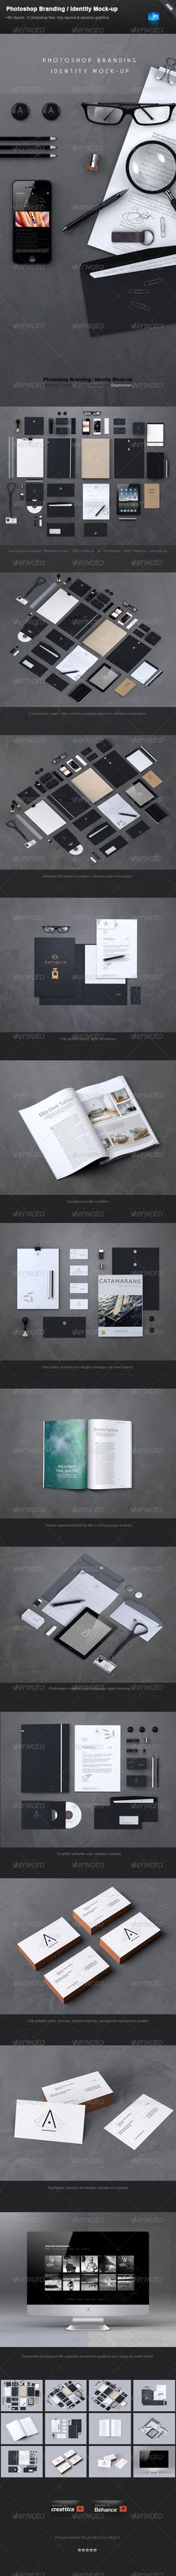 Stationery / Branding Mock-Up : Check out this great #graphicriver item 'Stationery / Branding Mock-Up' http://graphicriver.net/item/stationery-branding-mockup/4367980?ref=25EGY